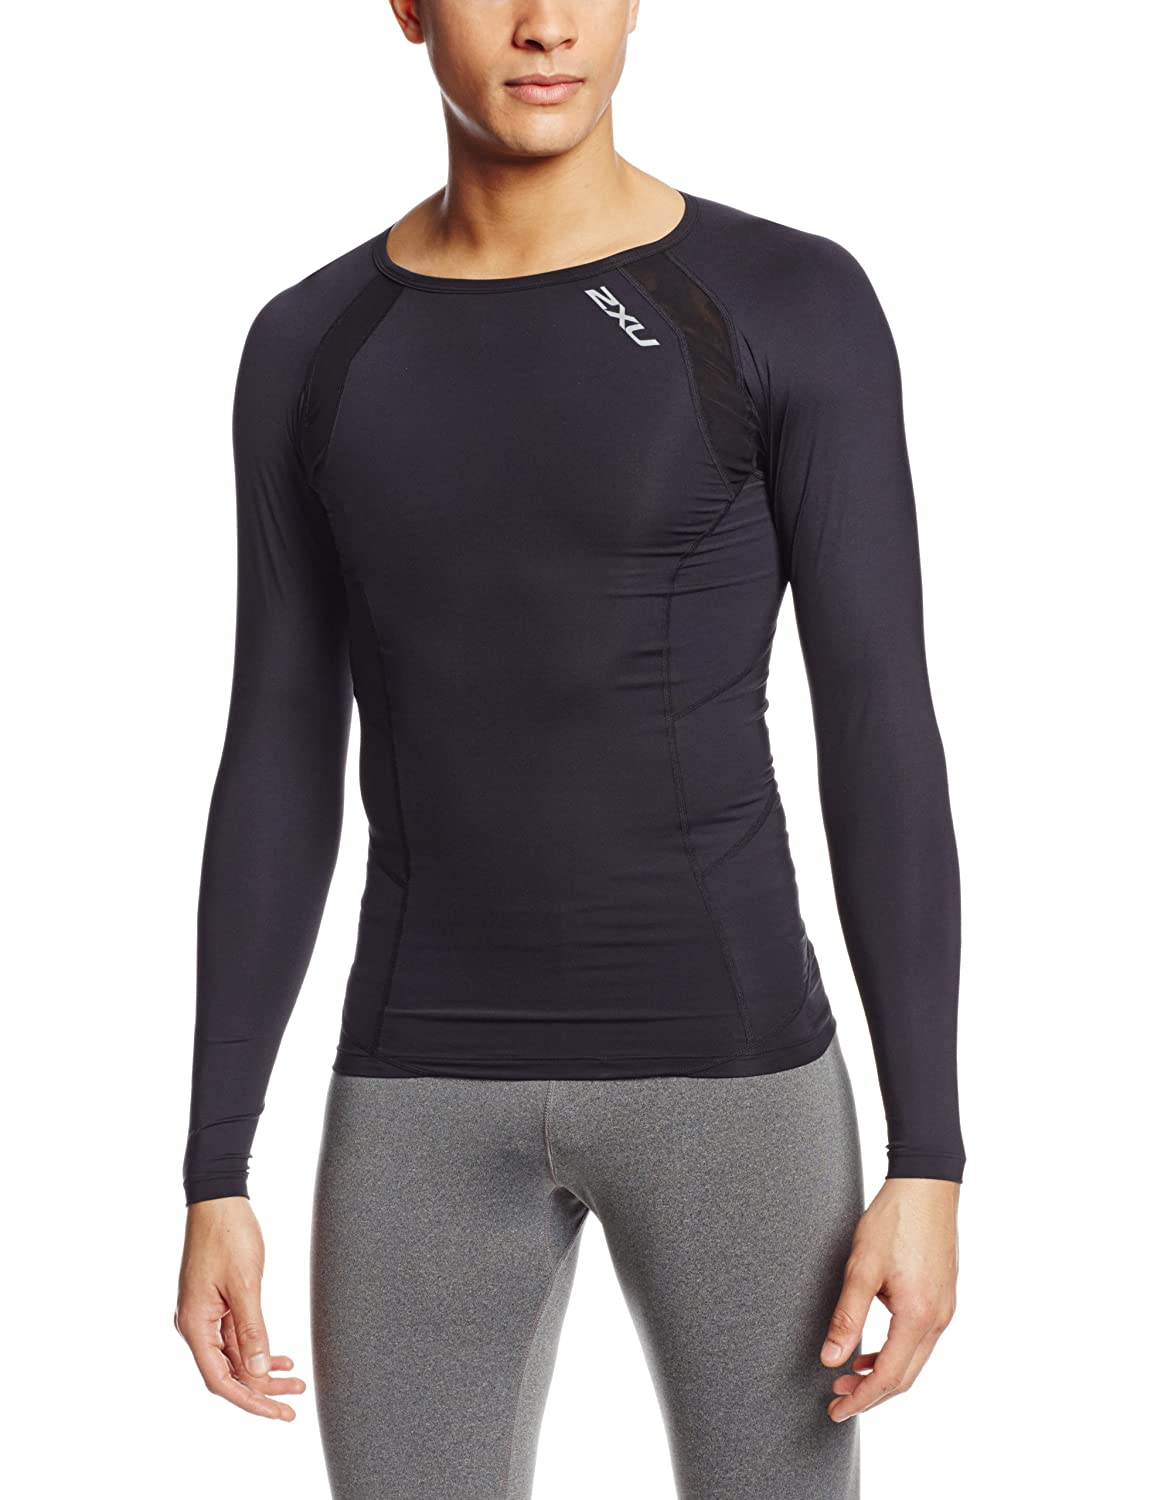 2XU Herren Shirt Long Sleeve Compression Top 2XU Pty Ltd MA1984a